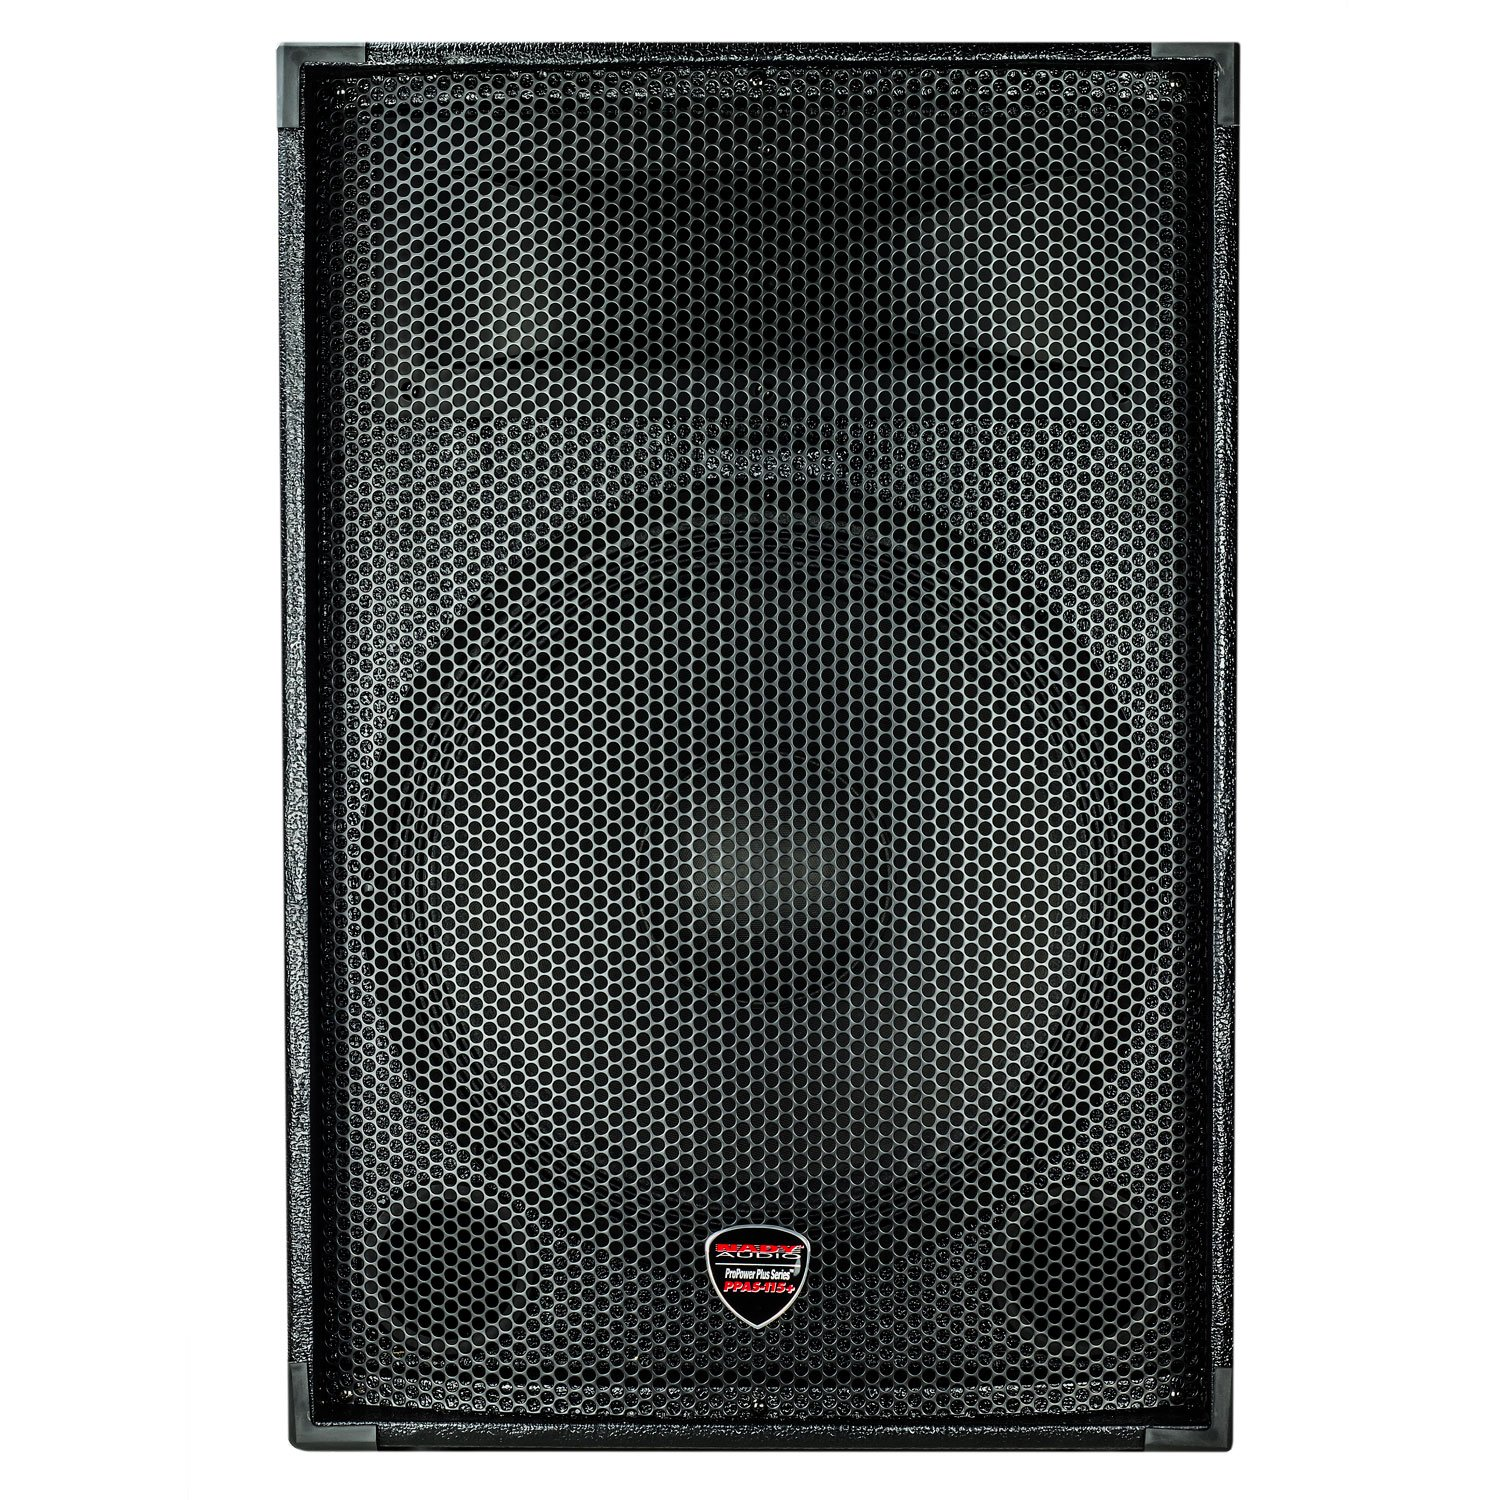 "Nady PPAS-115+ / Full Range 2-Way Powered PA speaker / 100W class AB amp / 15"" woofer/Tolex covered with carrying handles"